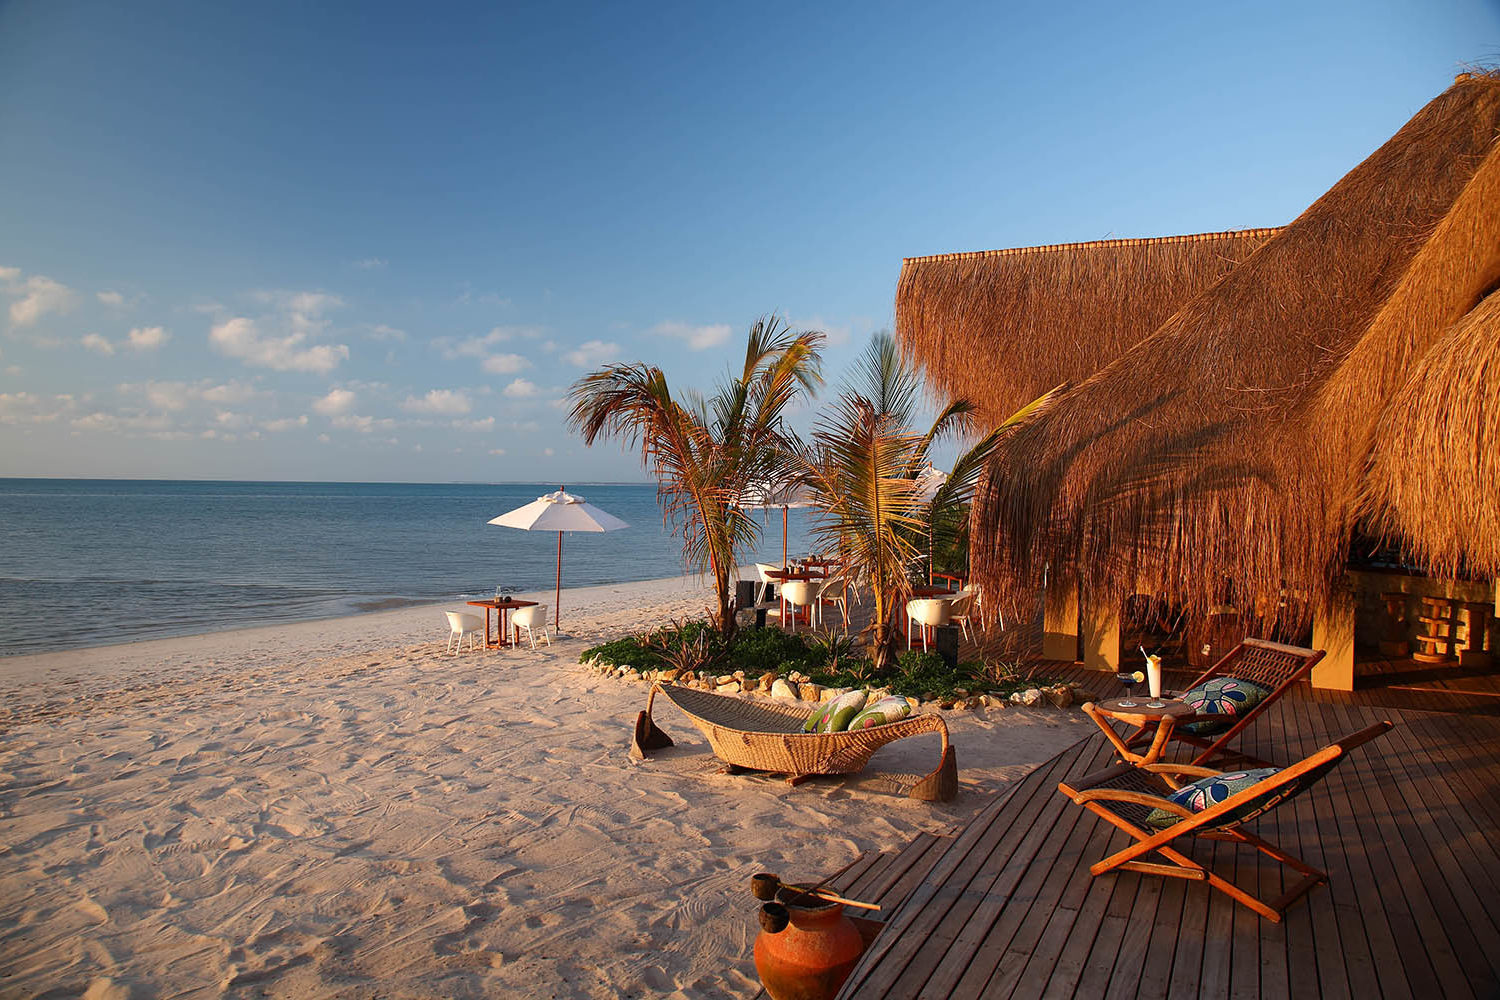 azura benguerra mozambique-lodges-zambia-in-style-safaris-ultimate-beach-experiences-setting-main